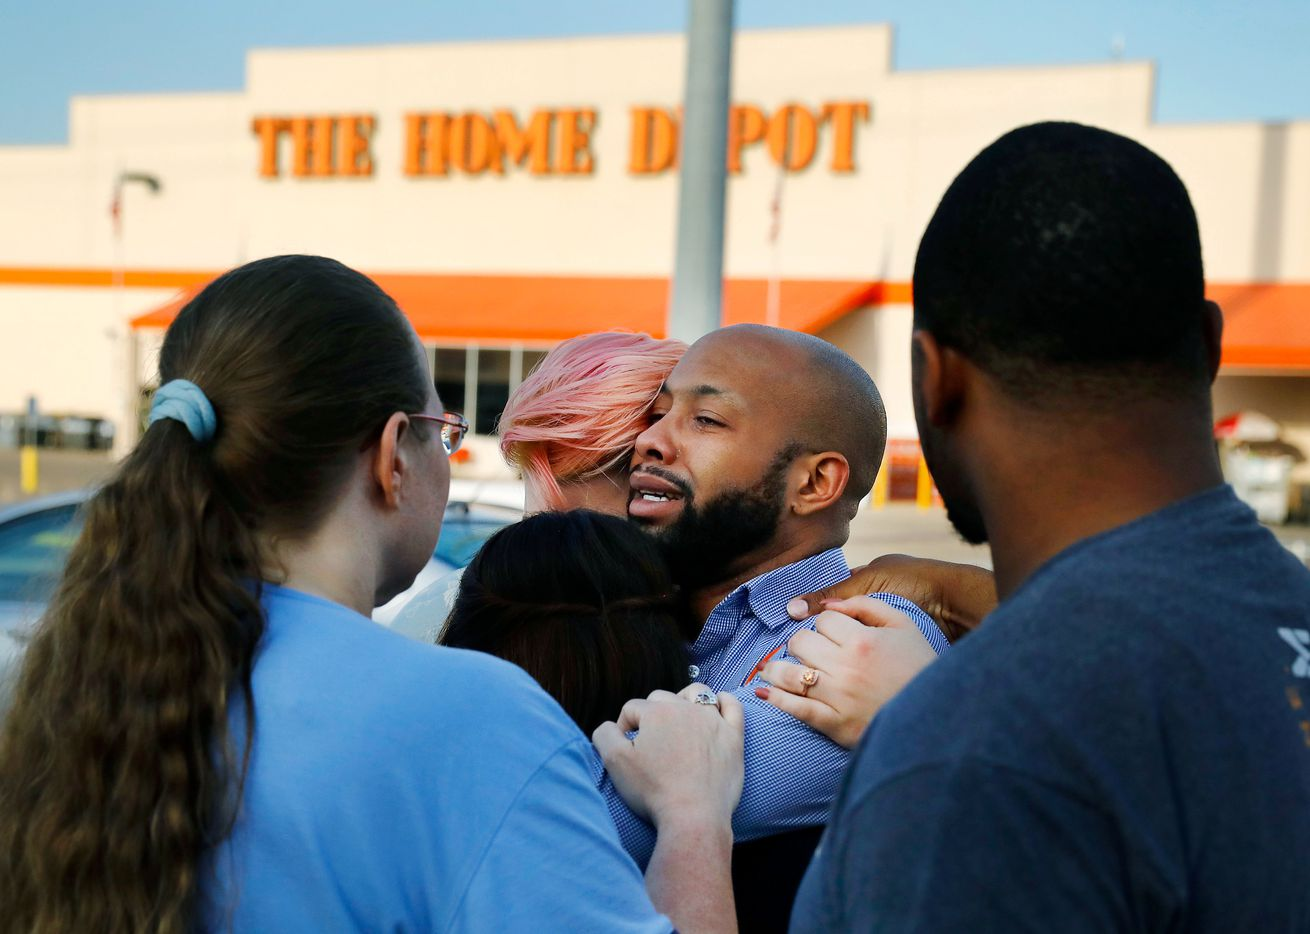 Home Depot employees comfort one another outside the store after two police officers and a civilian were shot by a man on April 24, 2018, in Dallas. The officers were critically wounded in the shooting, according to officials.